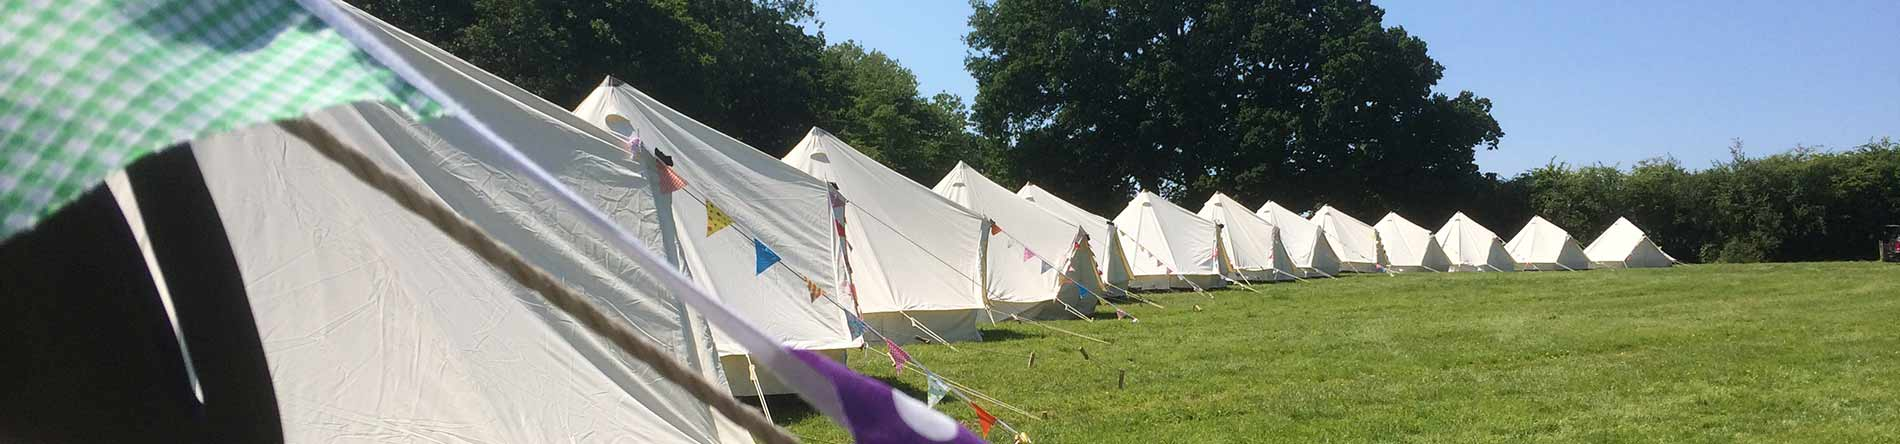 sustainable eco glastonbury camping